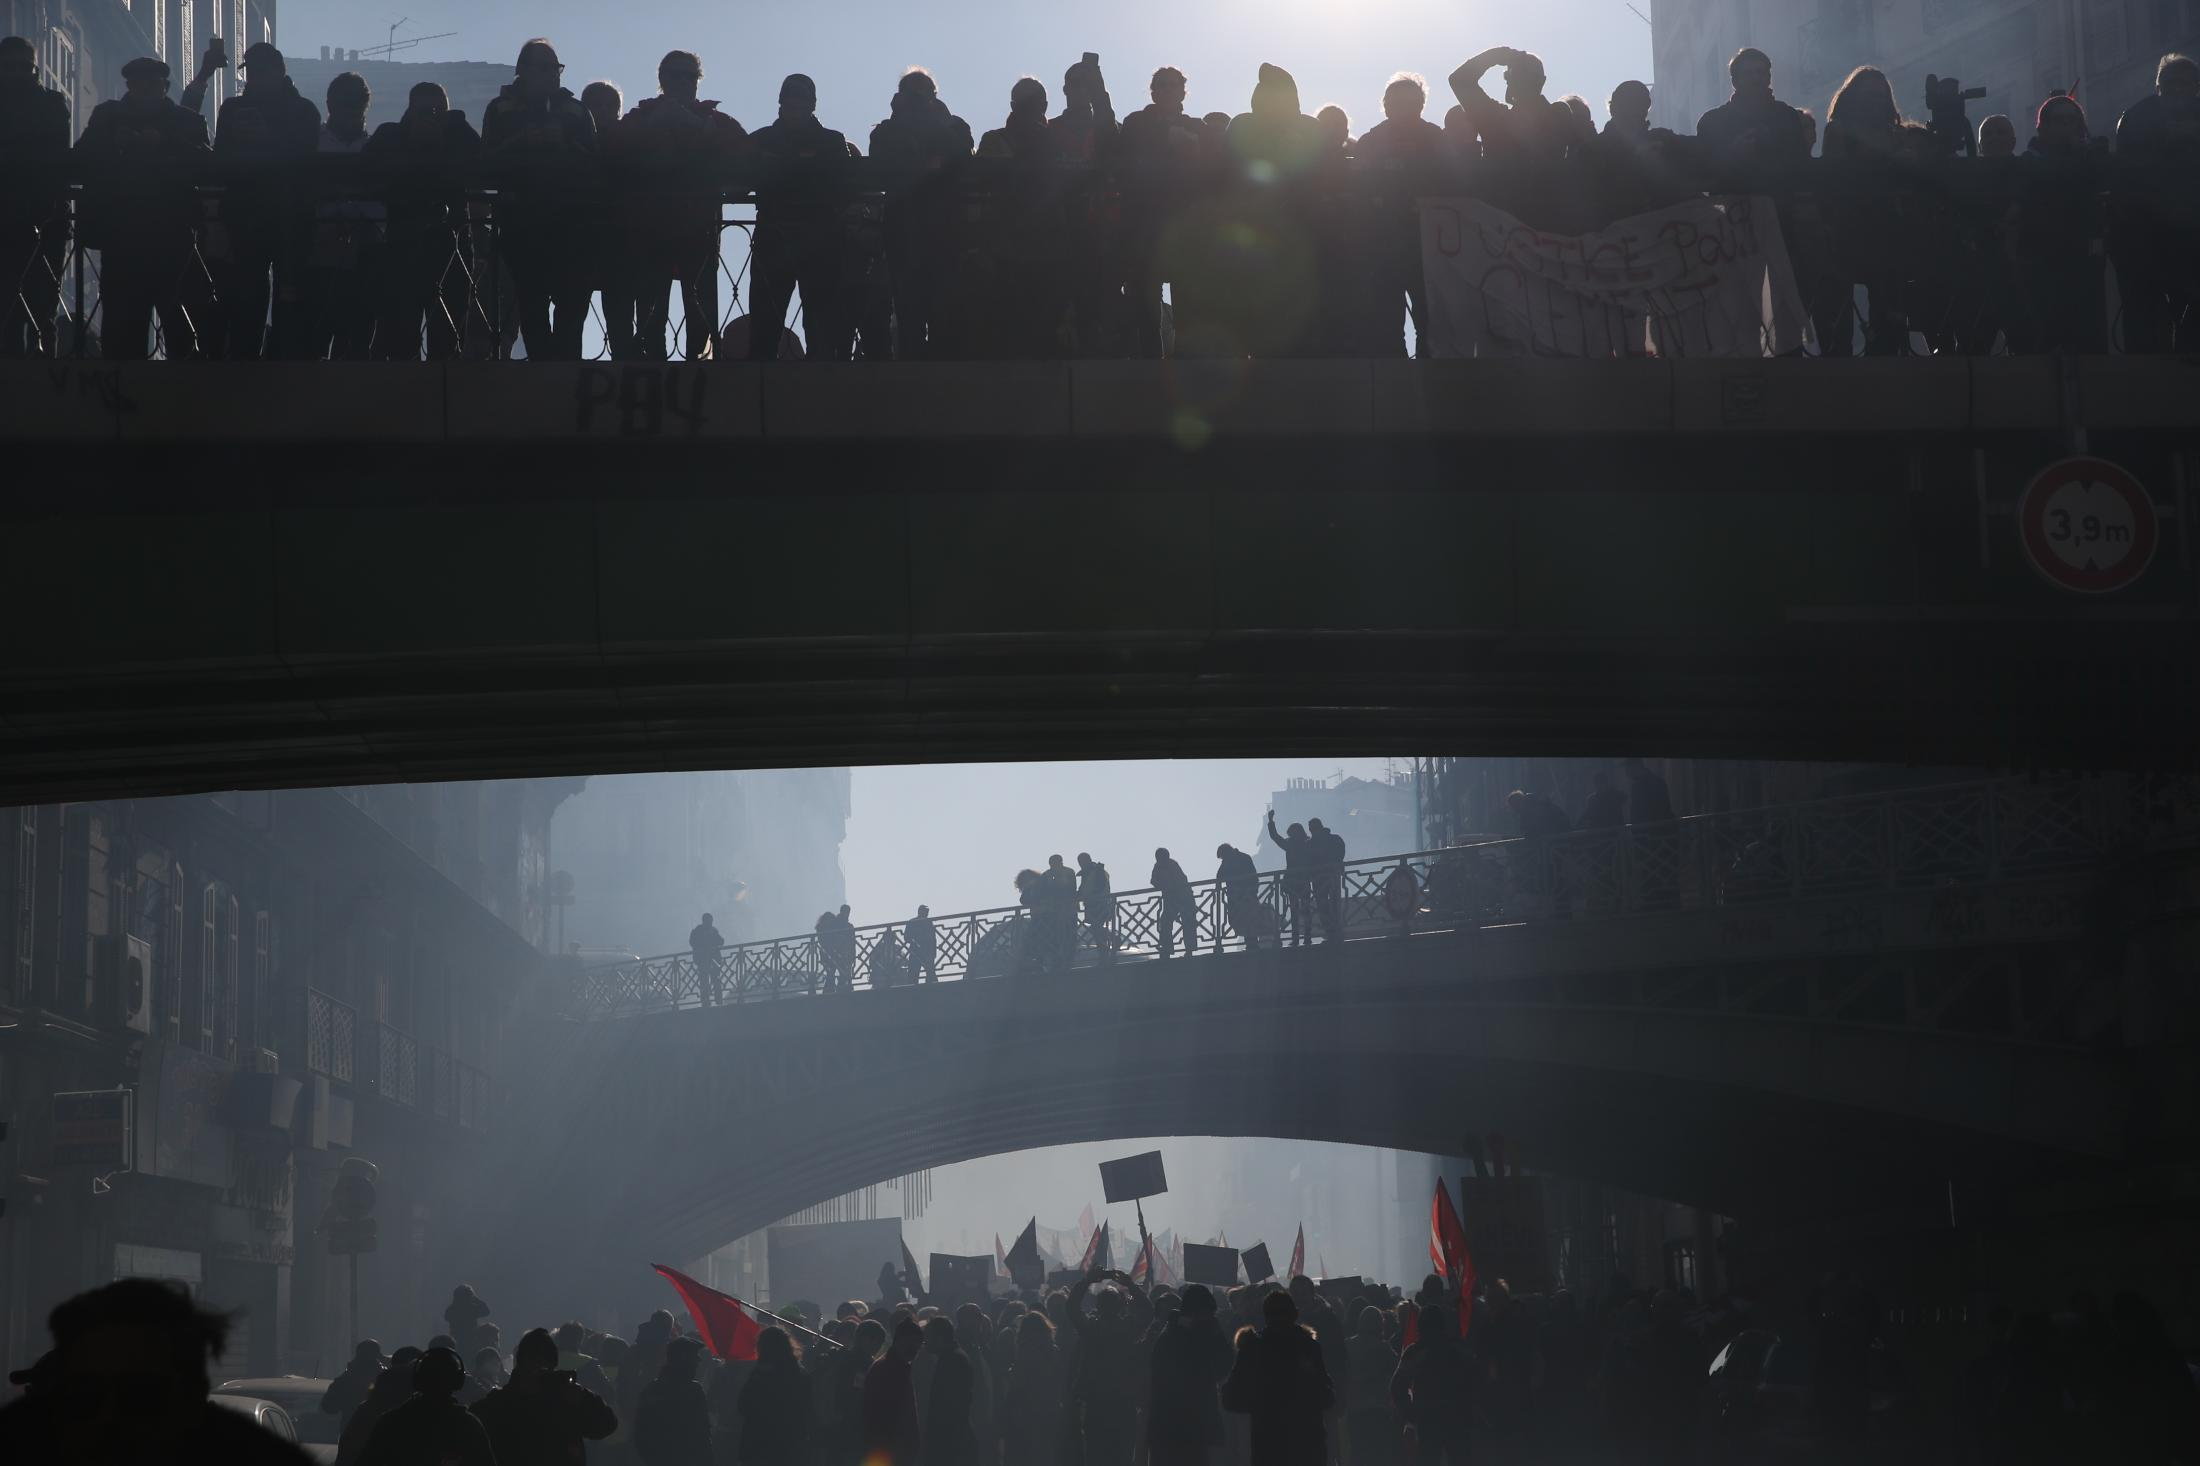 Protesters march during a mass stirke in Marseille, southern France, Tuesday, Dec. 10, 2019. French airport employees, teachers and other workers joined nationwide strikes Tuesday as unions cranked up pressure on the government to scrap upcoming changes to the country's national retirement system. (AP Photo/Daniel Cole)